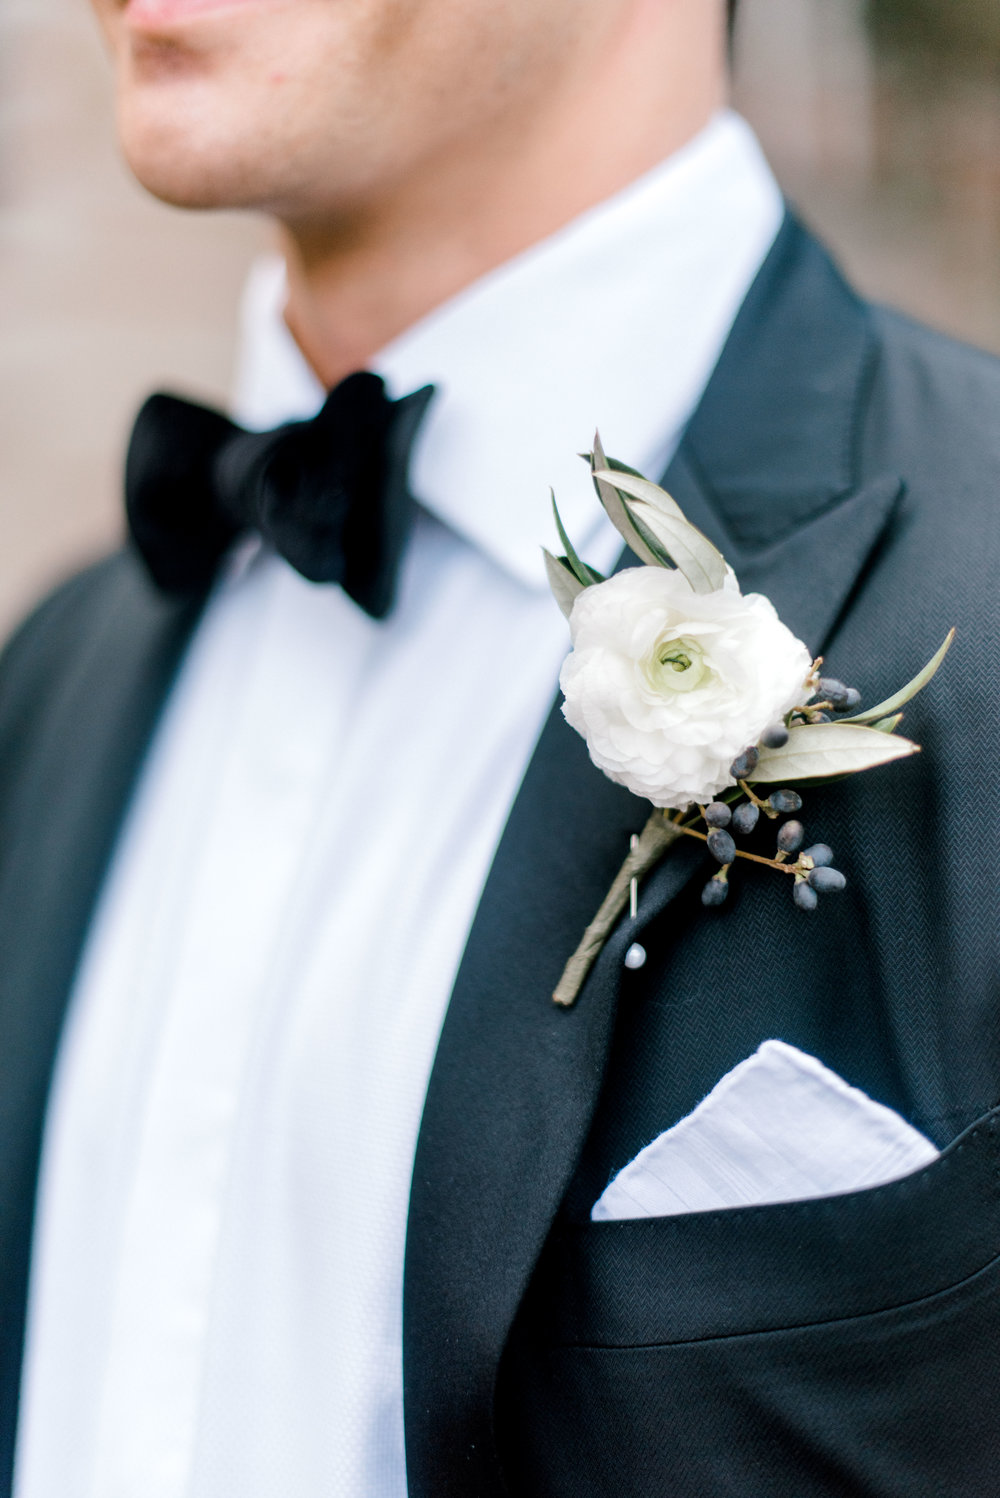 wedding-details-photography-dana-fernandez-groom-bowtie-tux-Ranunculus-berry-texture-pocket-square-floral-greenery-by-maxit-flower-design-houston-texas.jpg